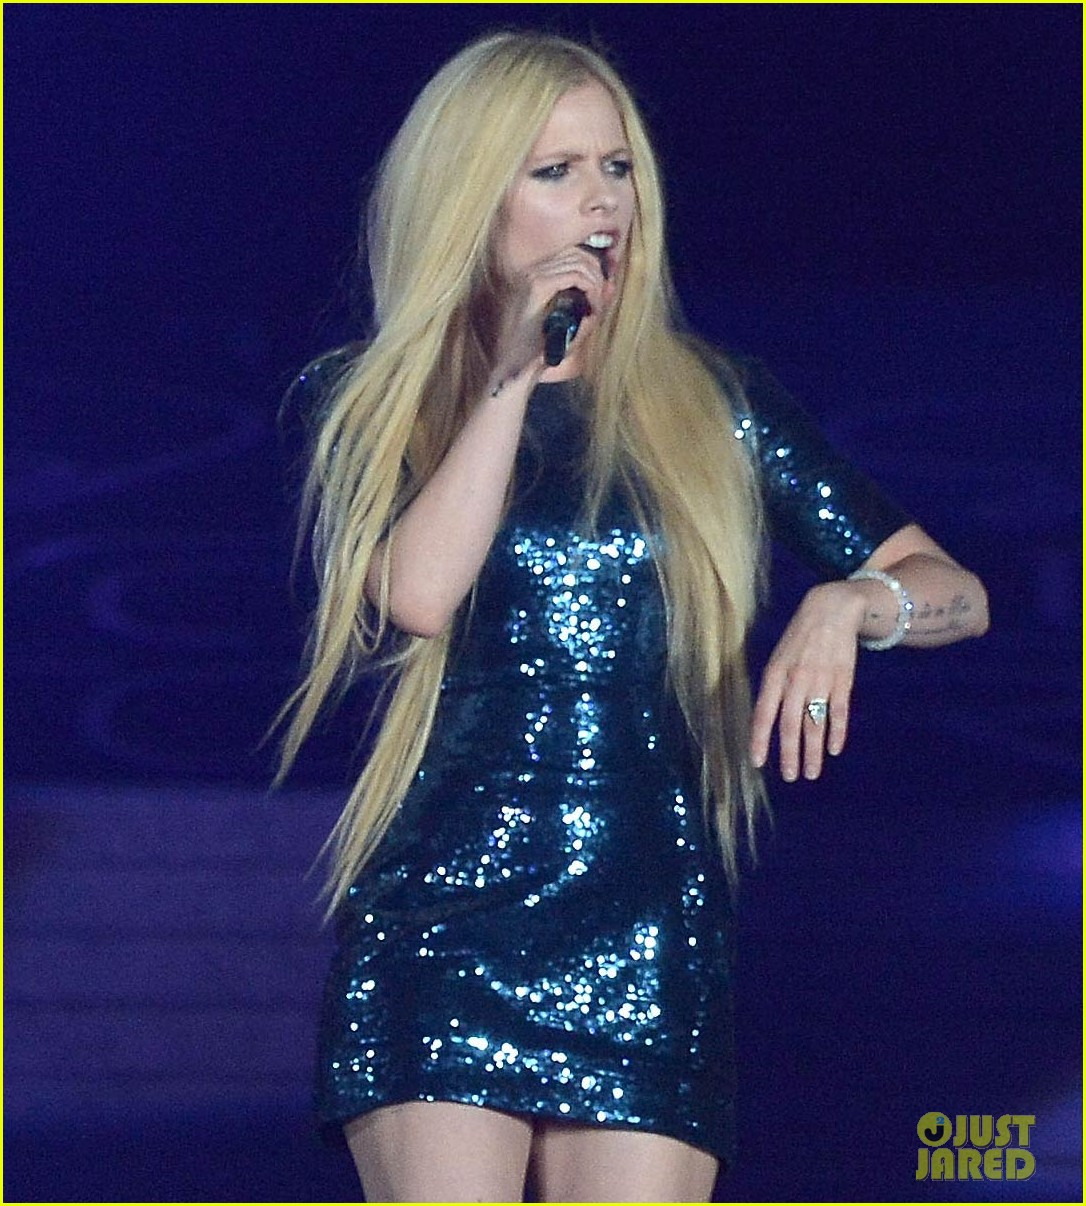 taylor swift and avril lavigne duet complicated relationship